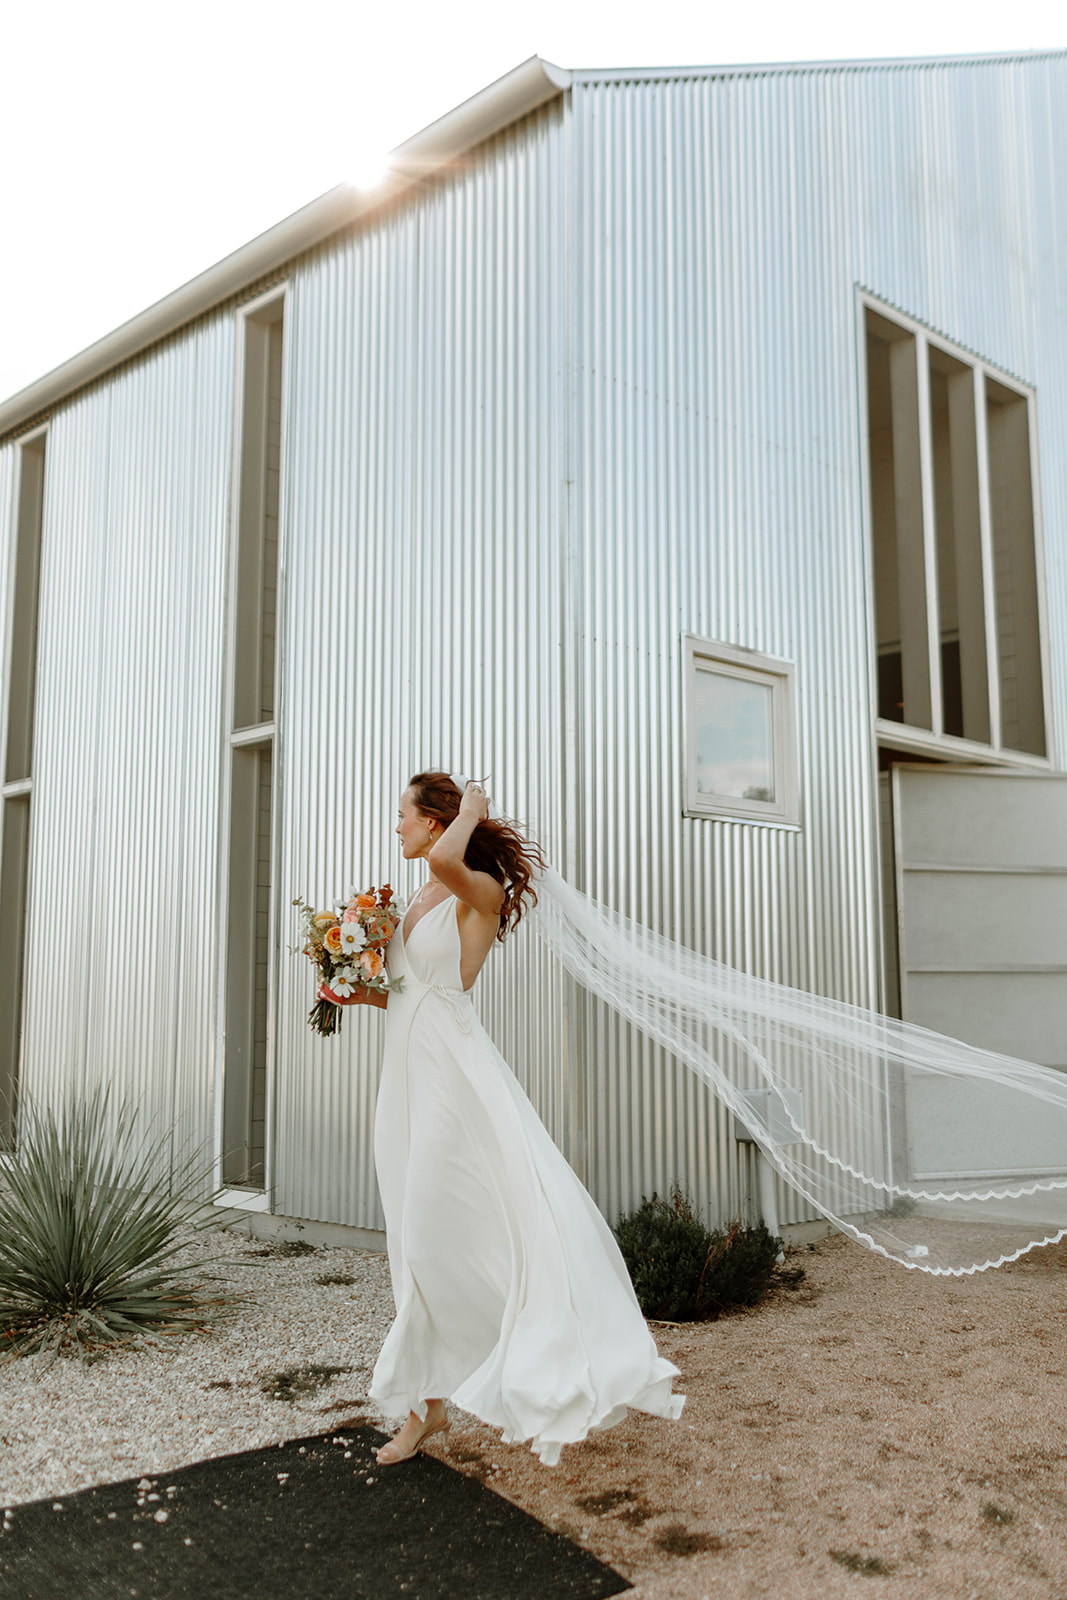 bride wearing long vail with light flowing wedding dress